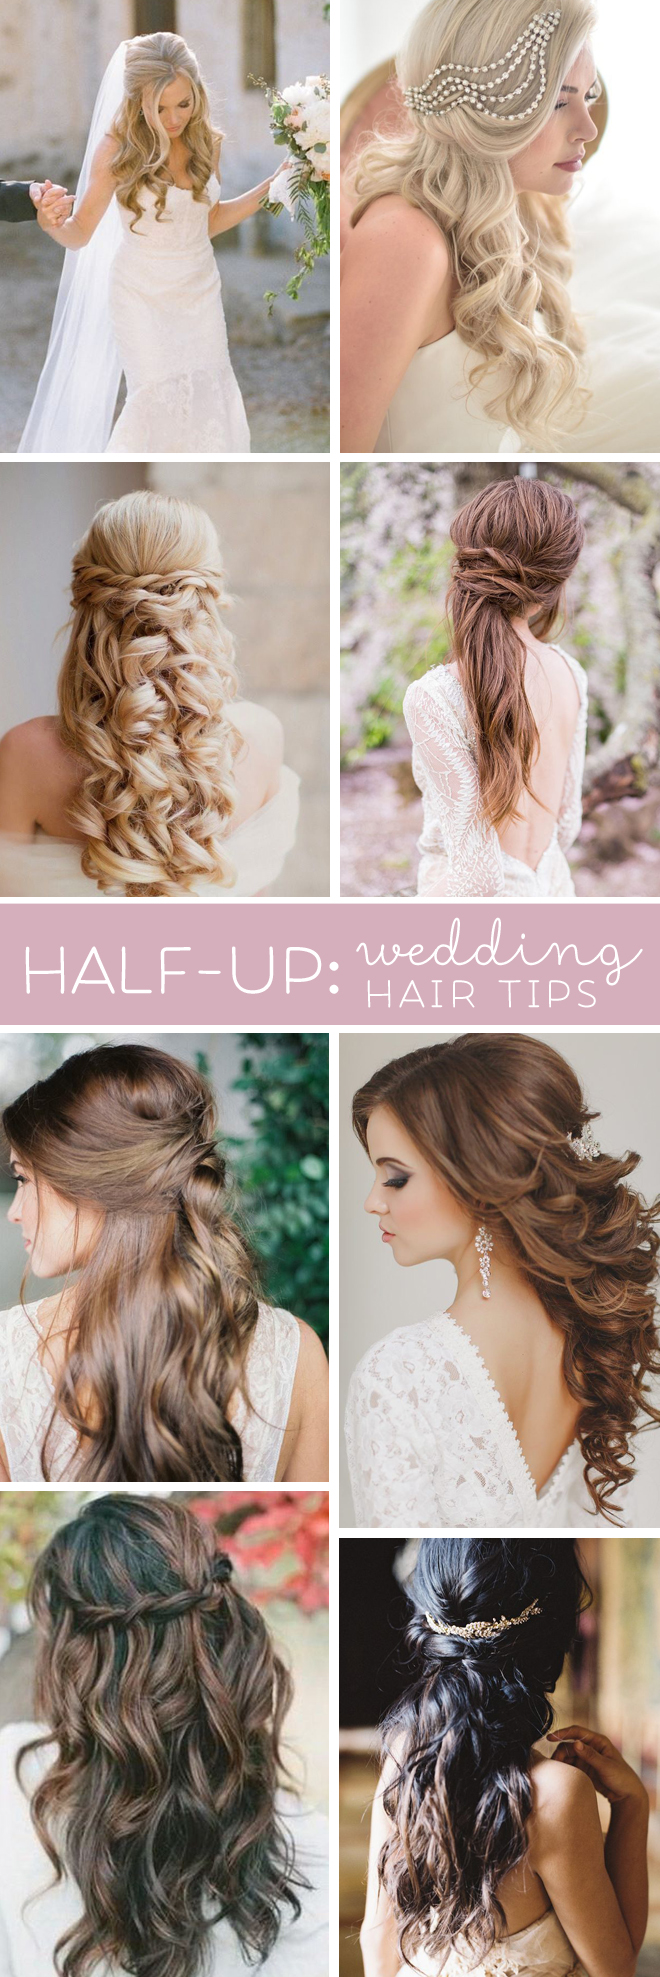 Wedding Hair Tips Half Up Half Down Styles